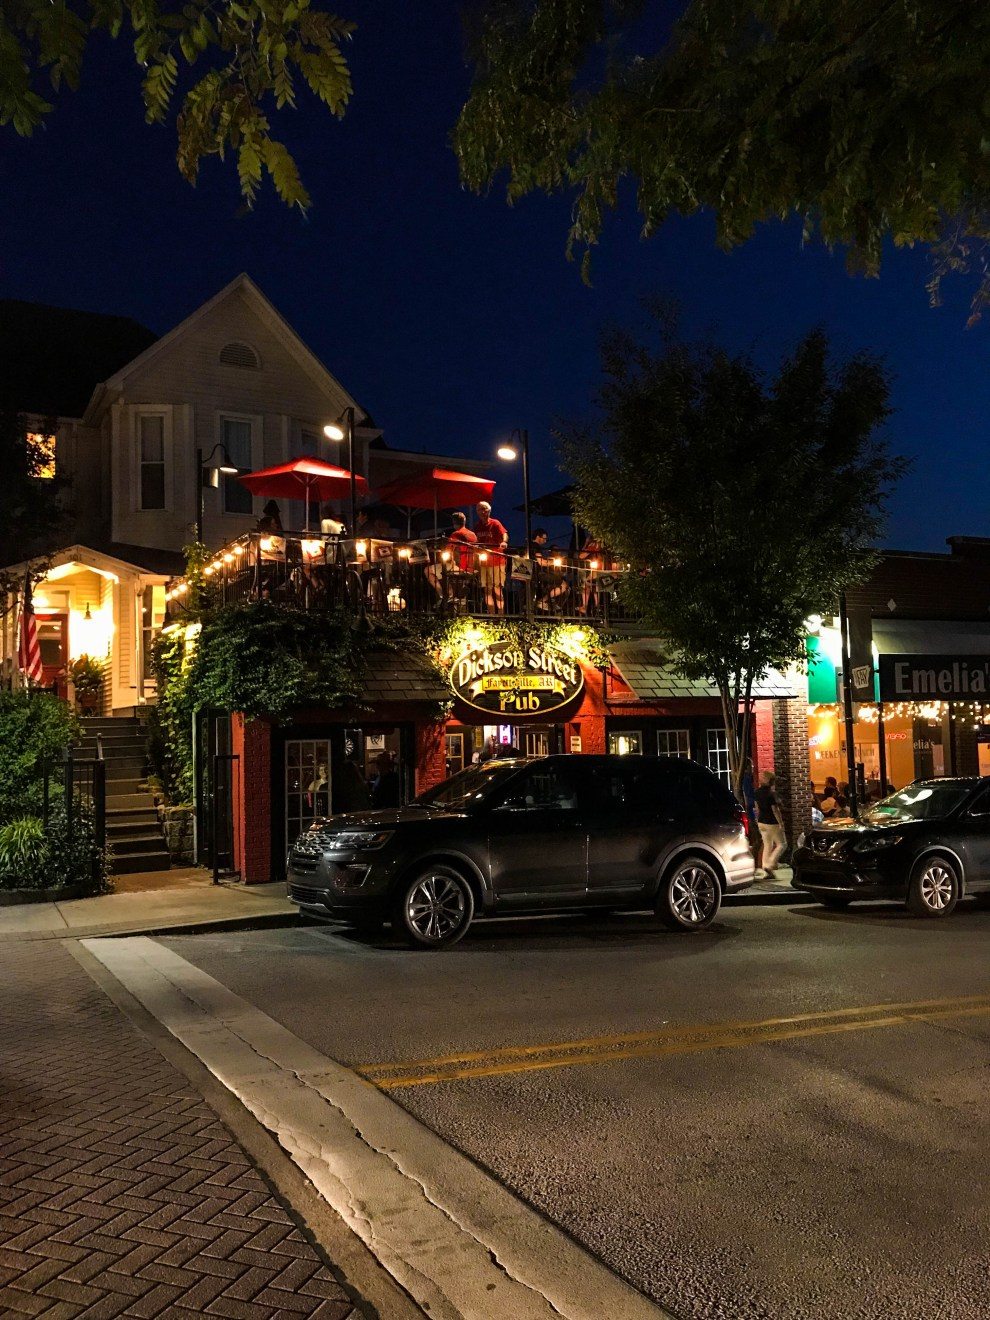 Fayetteville City Guide - What to do, where to eat and what to see!